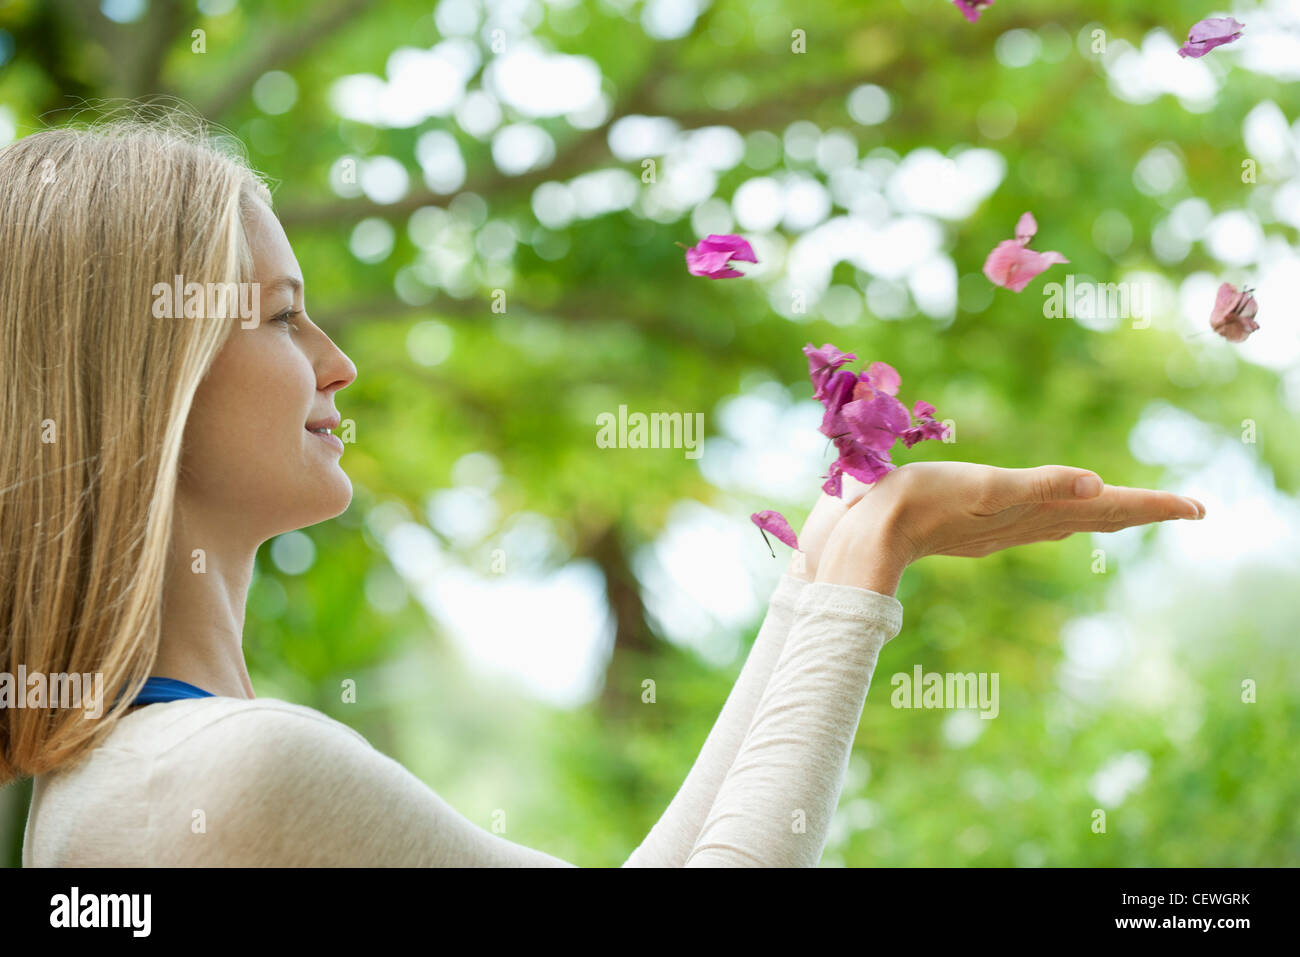 Young woman catching falling petals, side view - Stock Image